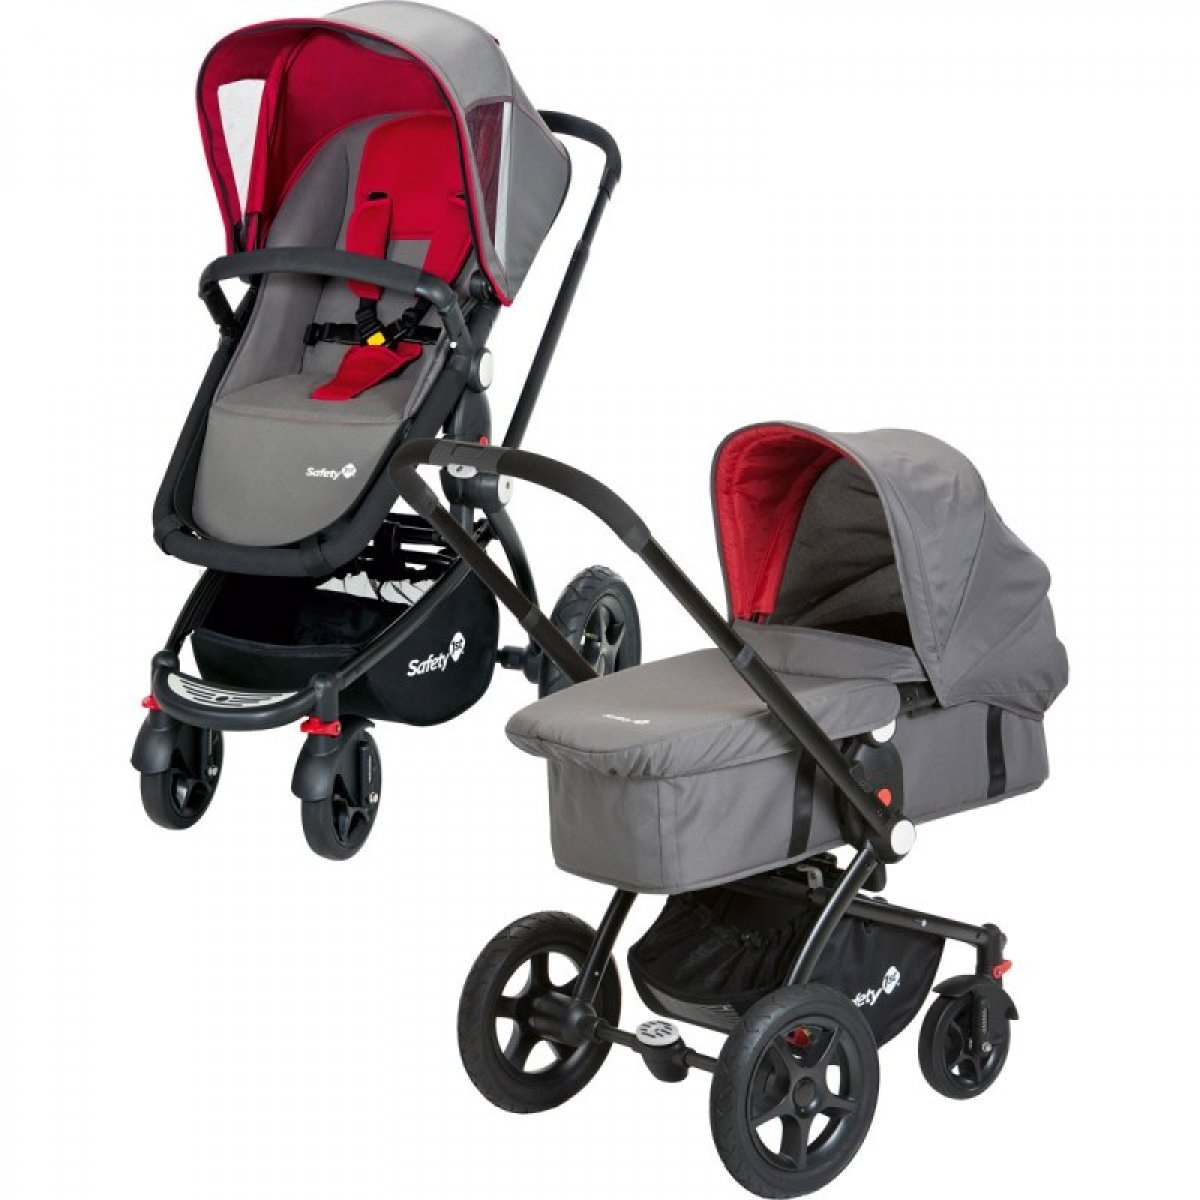 safety 1st roadmaster pack including pram and sports car. Black Bedroom Furniture Sets. Home Design Ideas